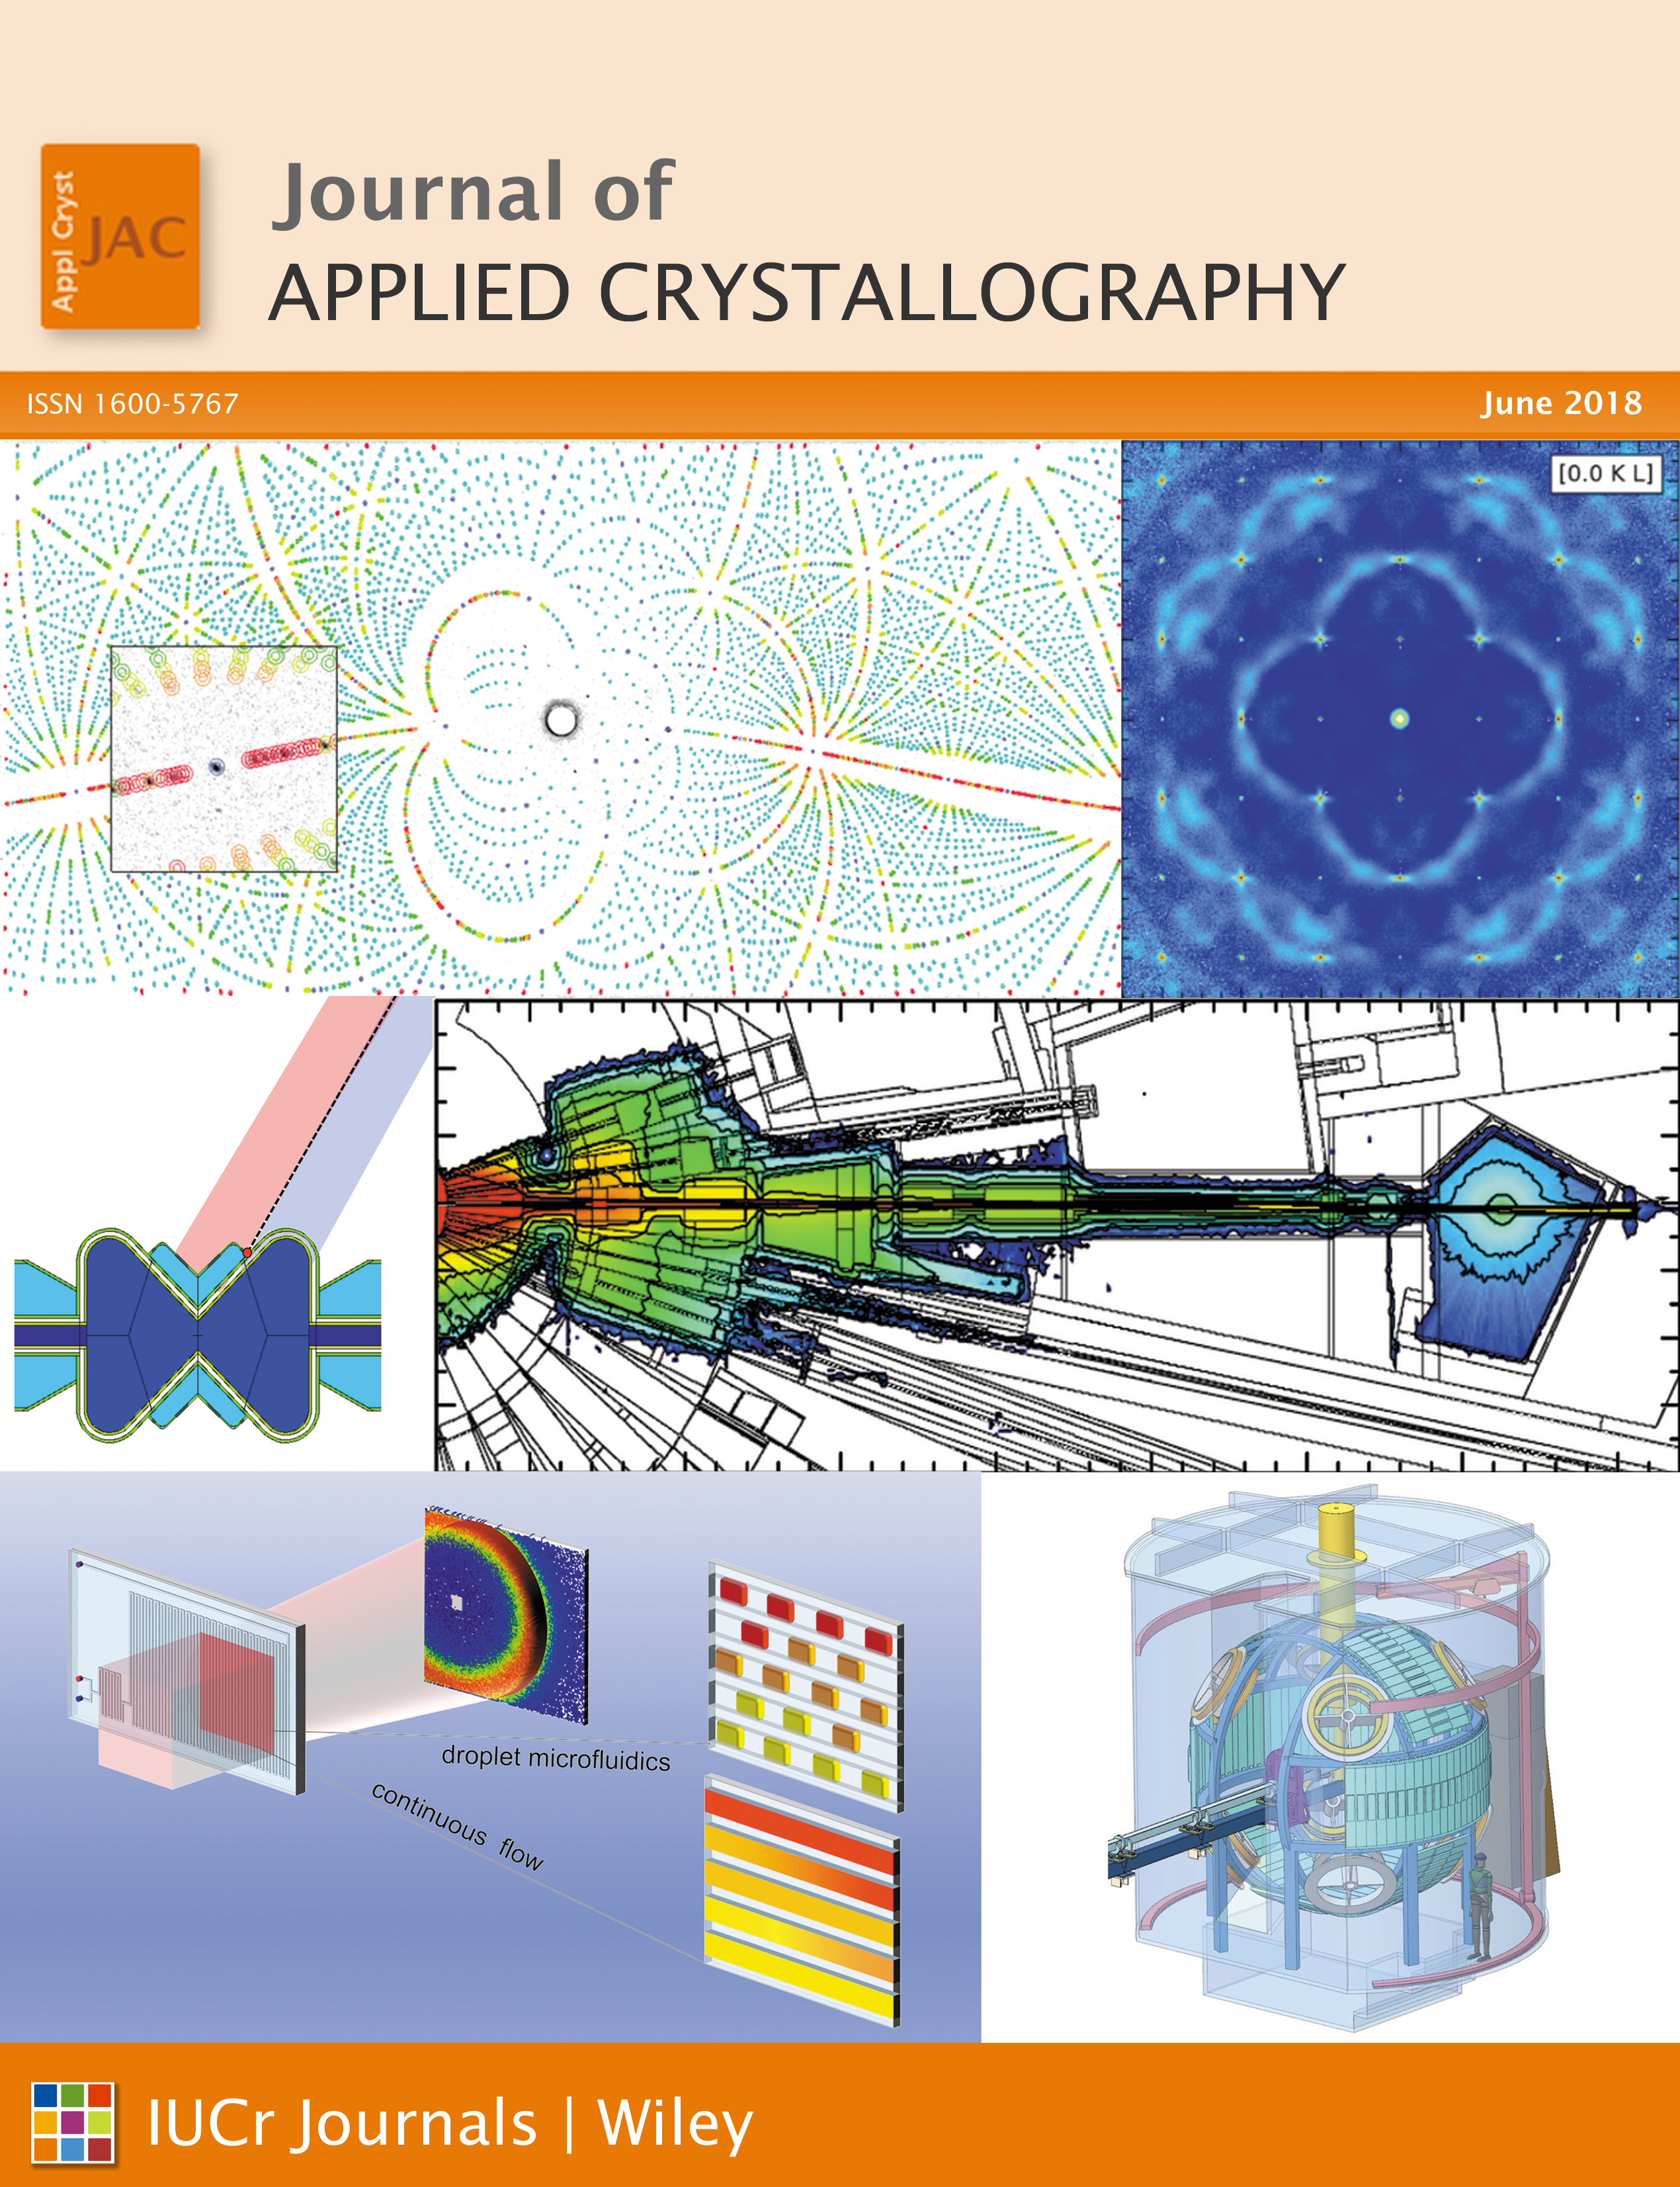 [neutron scattering special issue]